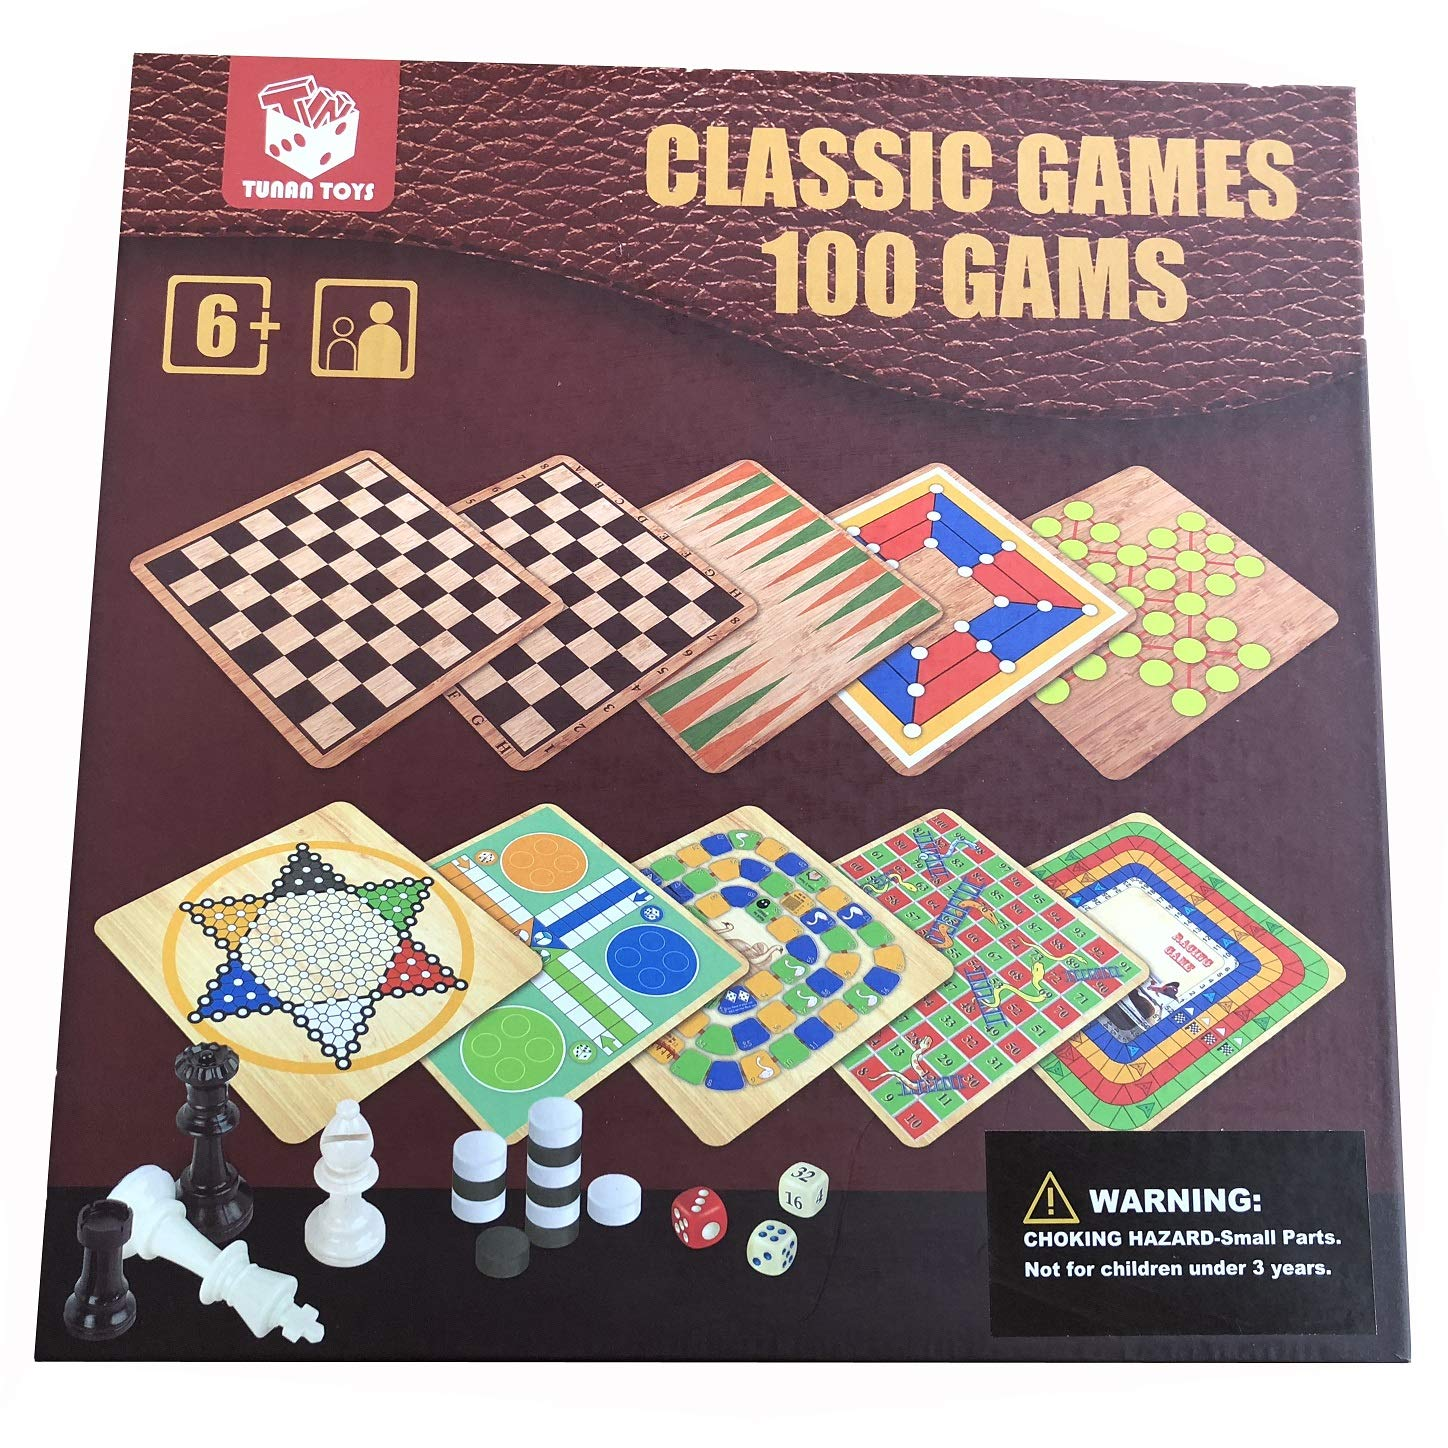 Classic Games 100 Games Collection TUNAN